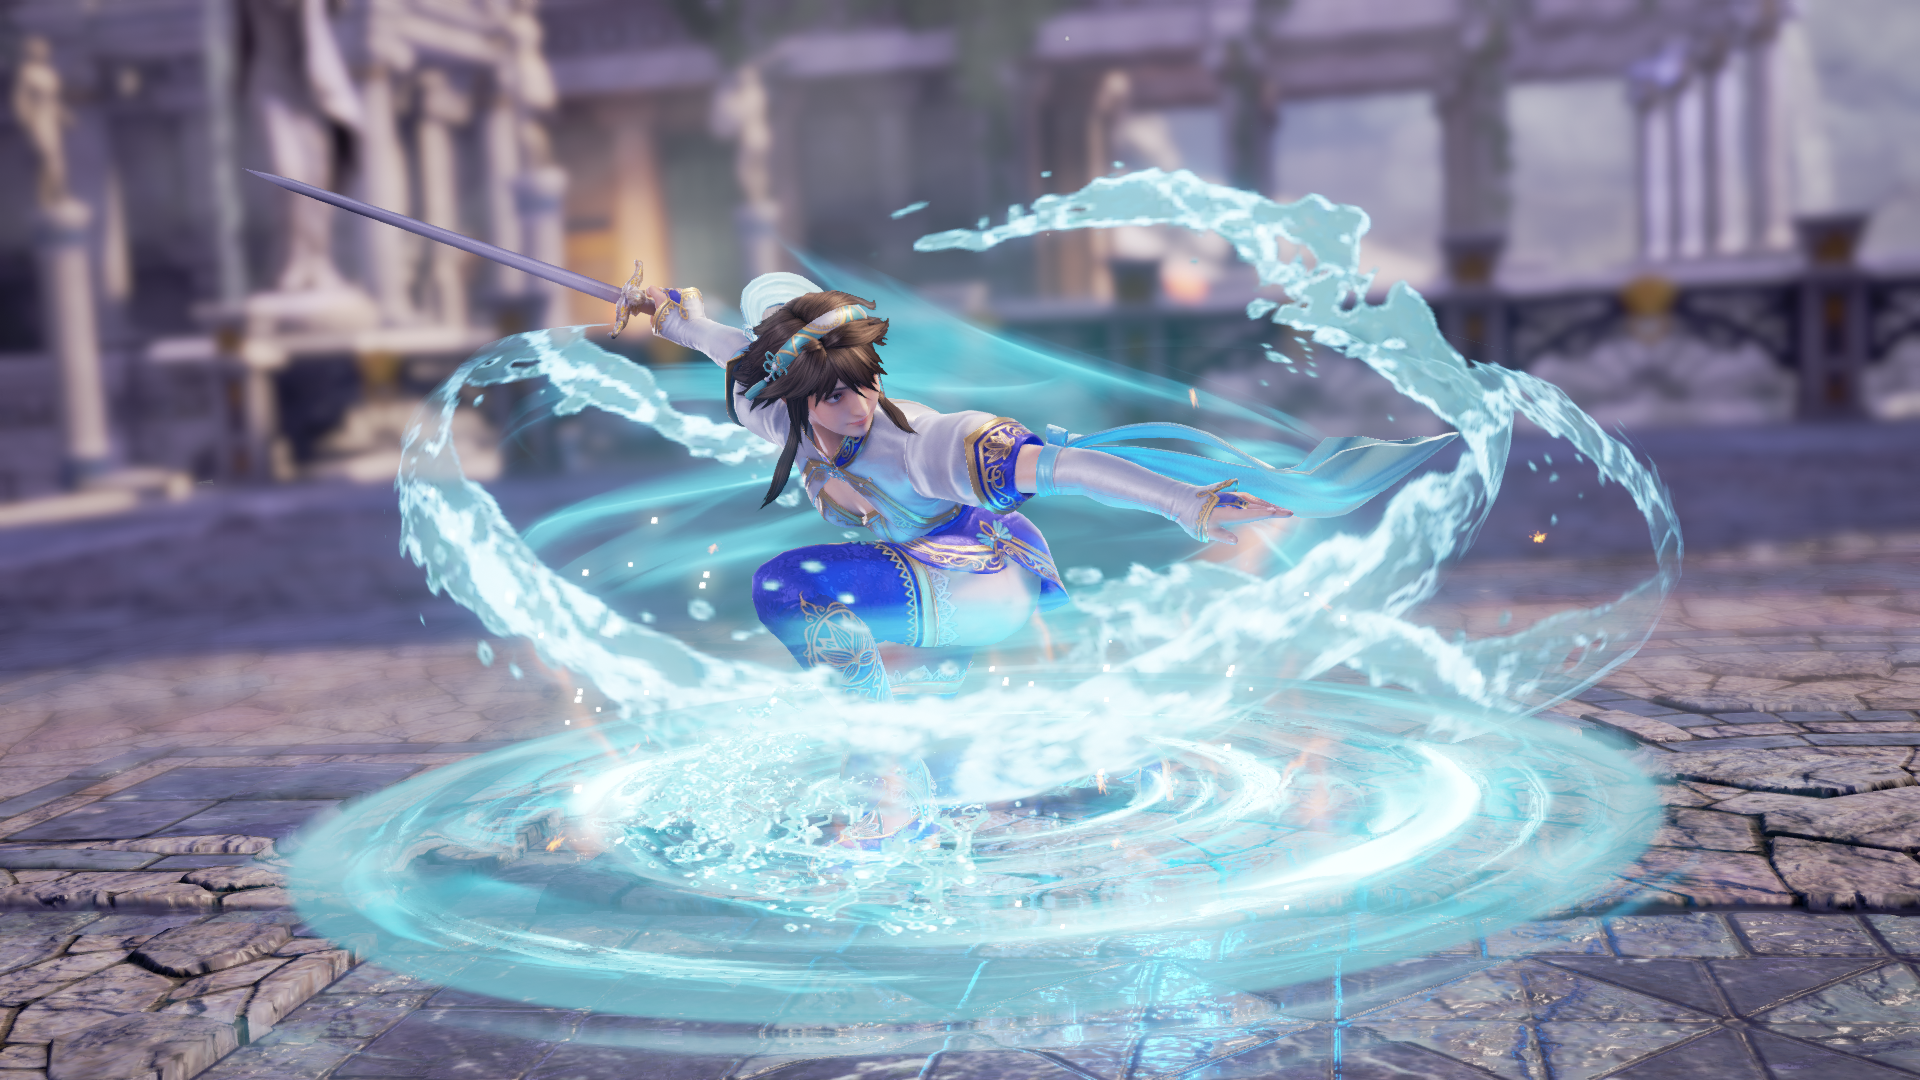 XIANGHUA_critical_edge01_20180116_1516966438